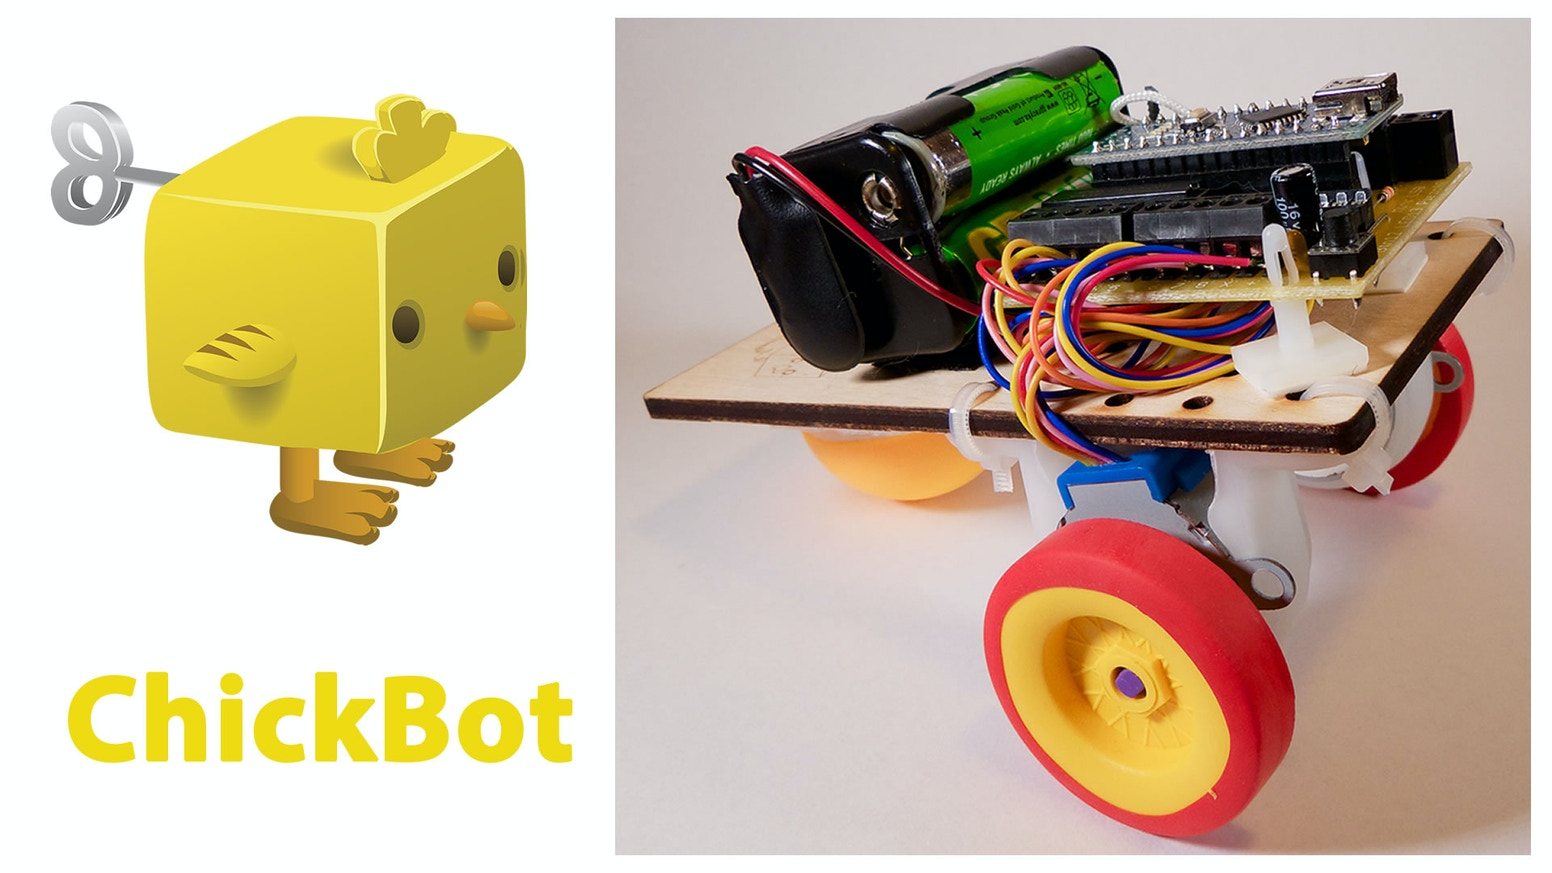 A low-cost, simple, programmable, expandable, open source robot kit that is also a maker platform with add-ons for physical computing